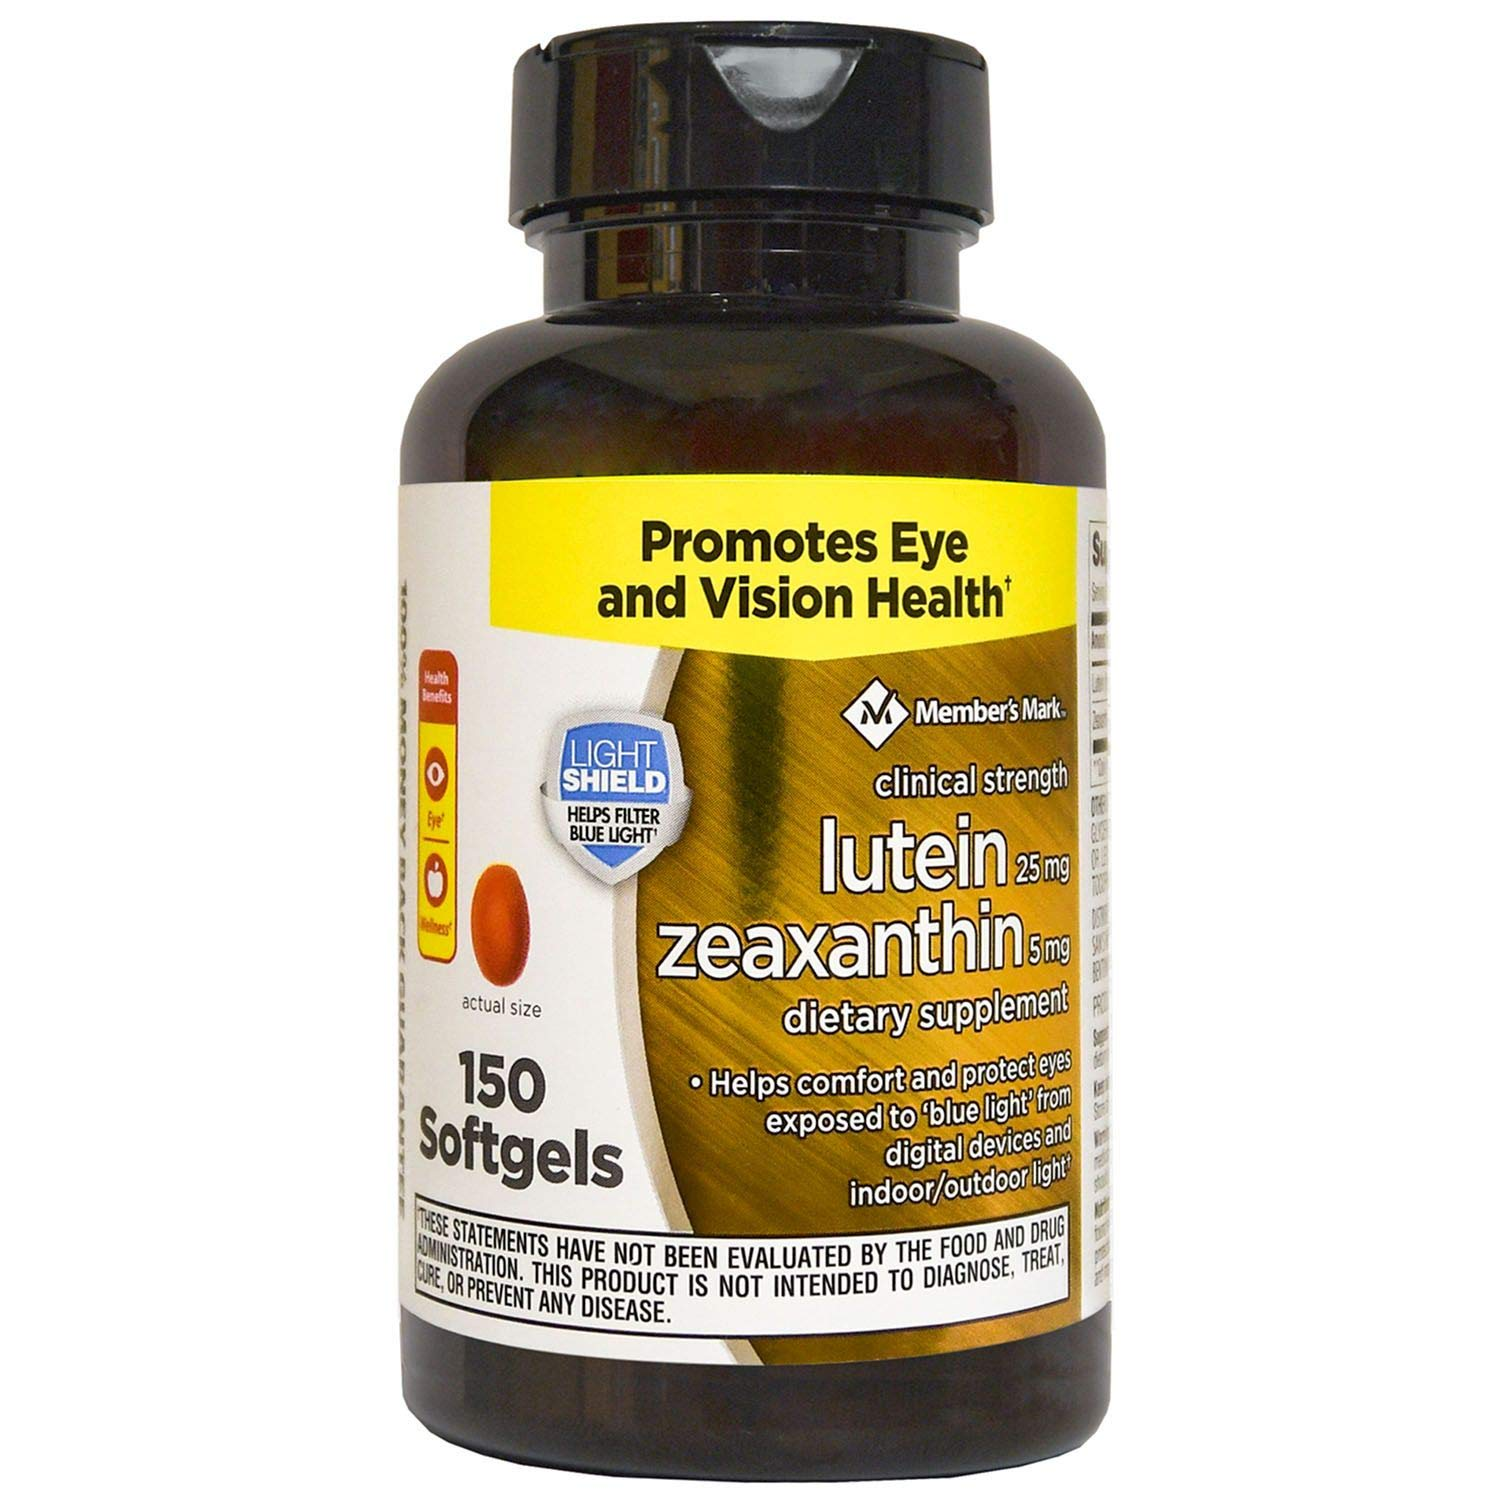 Member's Mark Lutein 25 mg and Zeaxanthin 5 mg, 150 Softgels by Members Mark